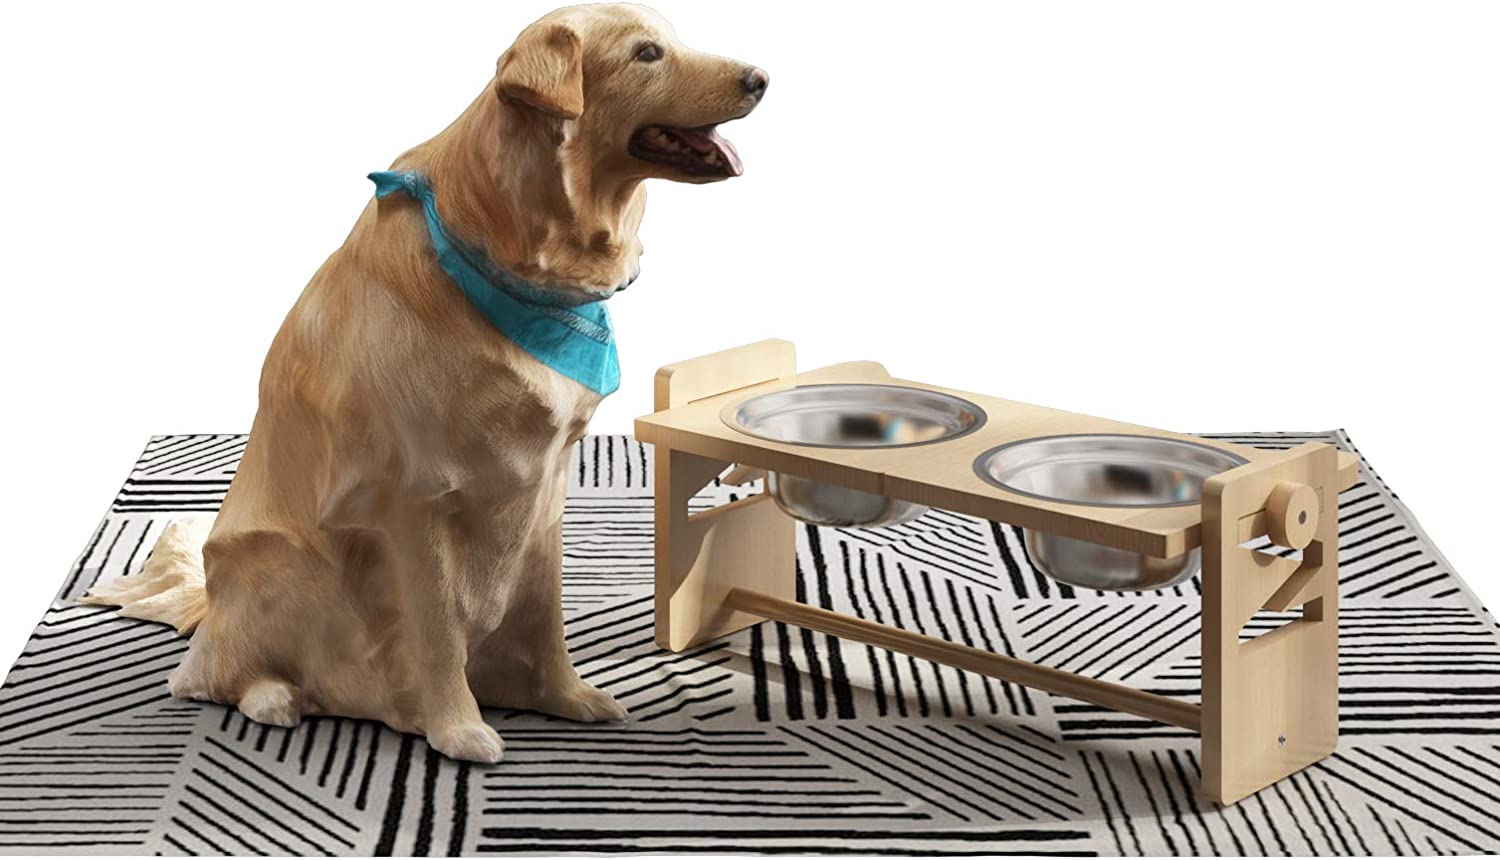 Elevated Dog Bowls for Large and Medium Pets, 4 Adjustable Height Bamboo Raised Cat Food and Water Bowl , Stand Feeder with 8 Inch Stainless Steel Bowl, Meet Pets Feeding Needs